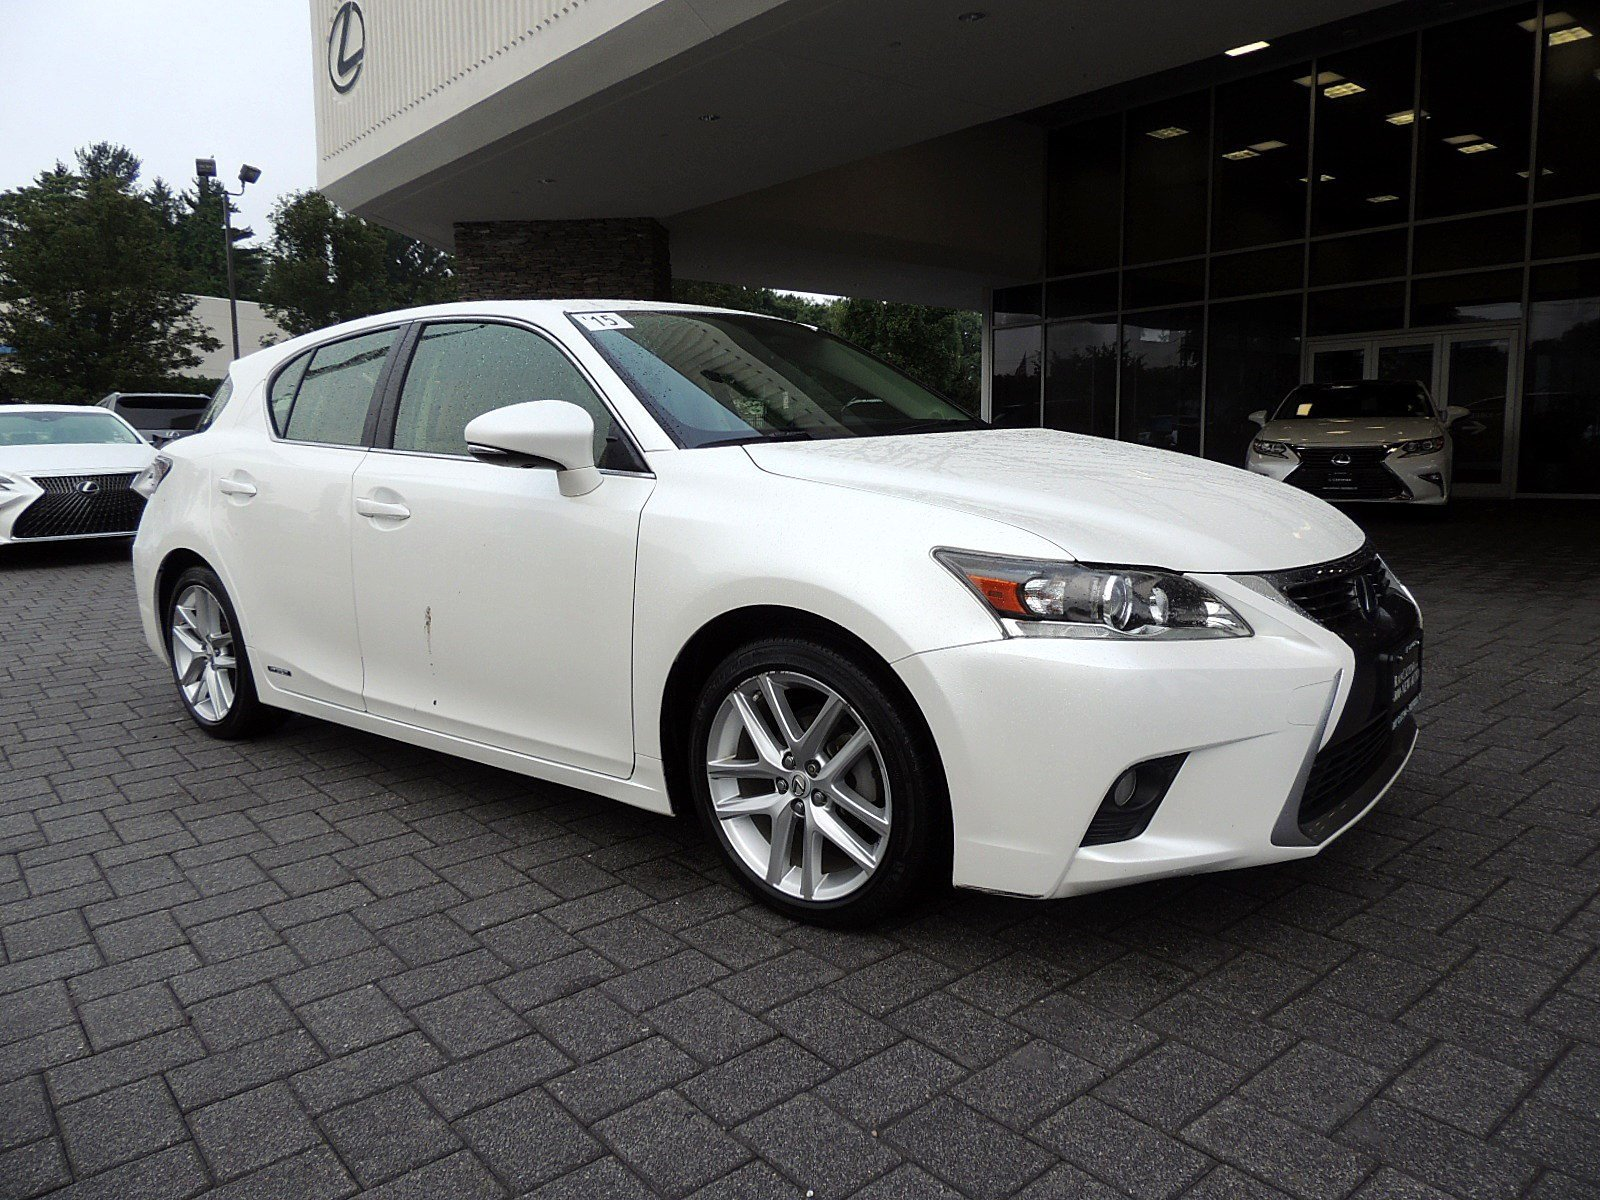 Certified Pre Owned 2015 Lexus CT 200h 4D Hatchback in Edison Z5462